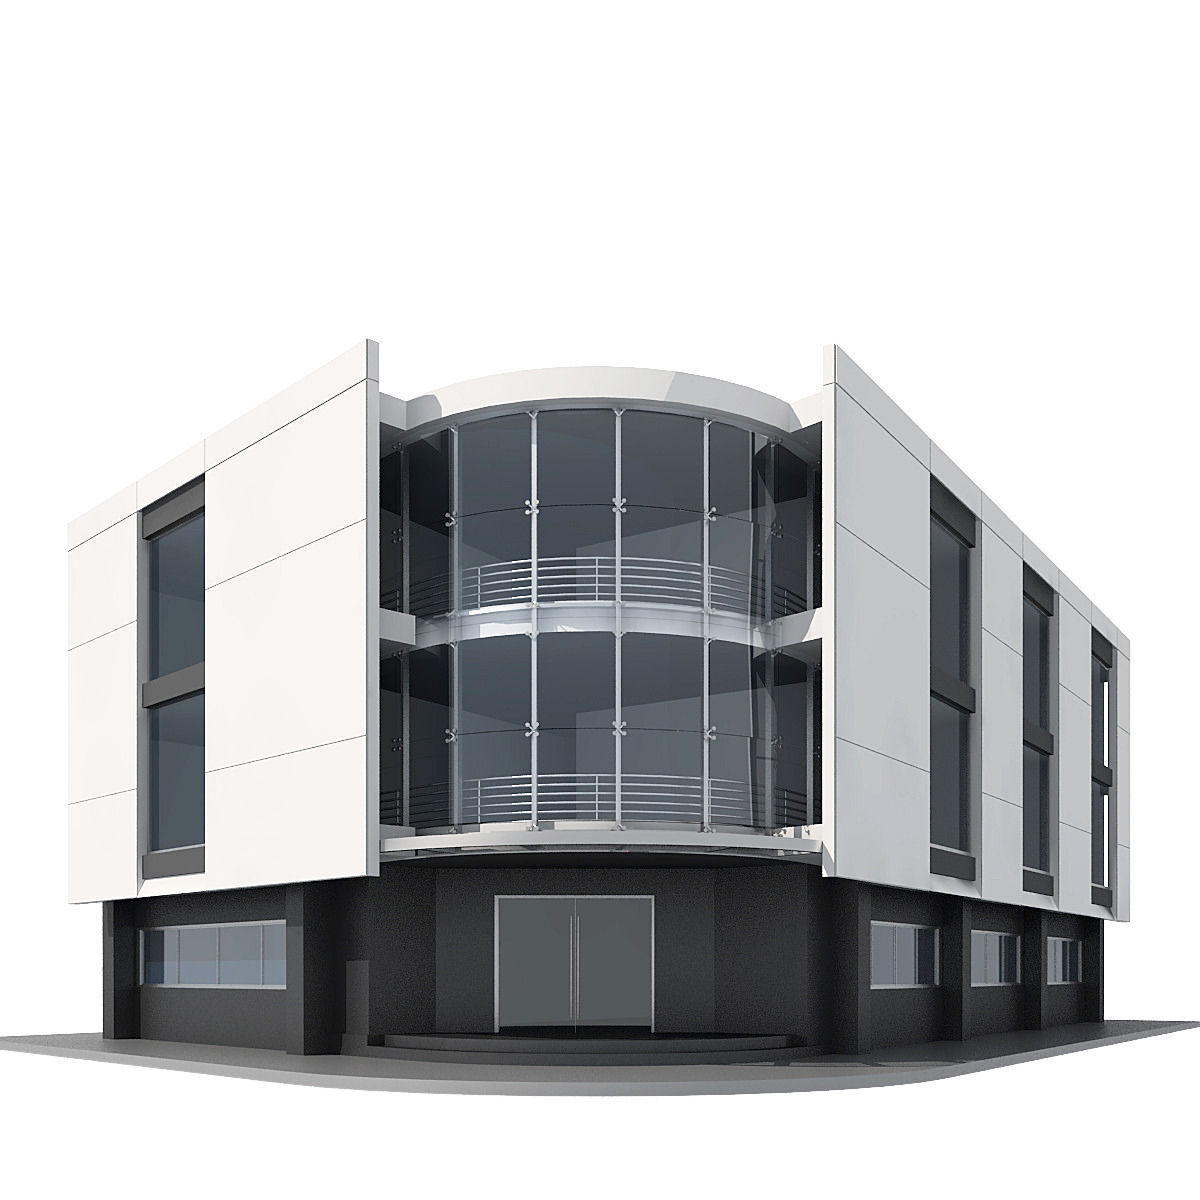 Corner Building 3d Model Max Obj 3ds: 3d house building